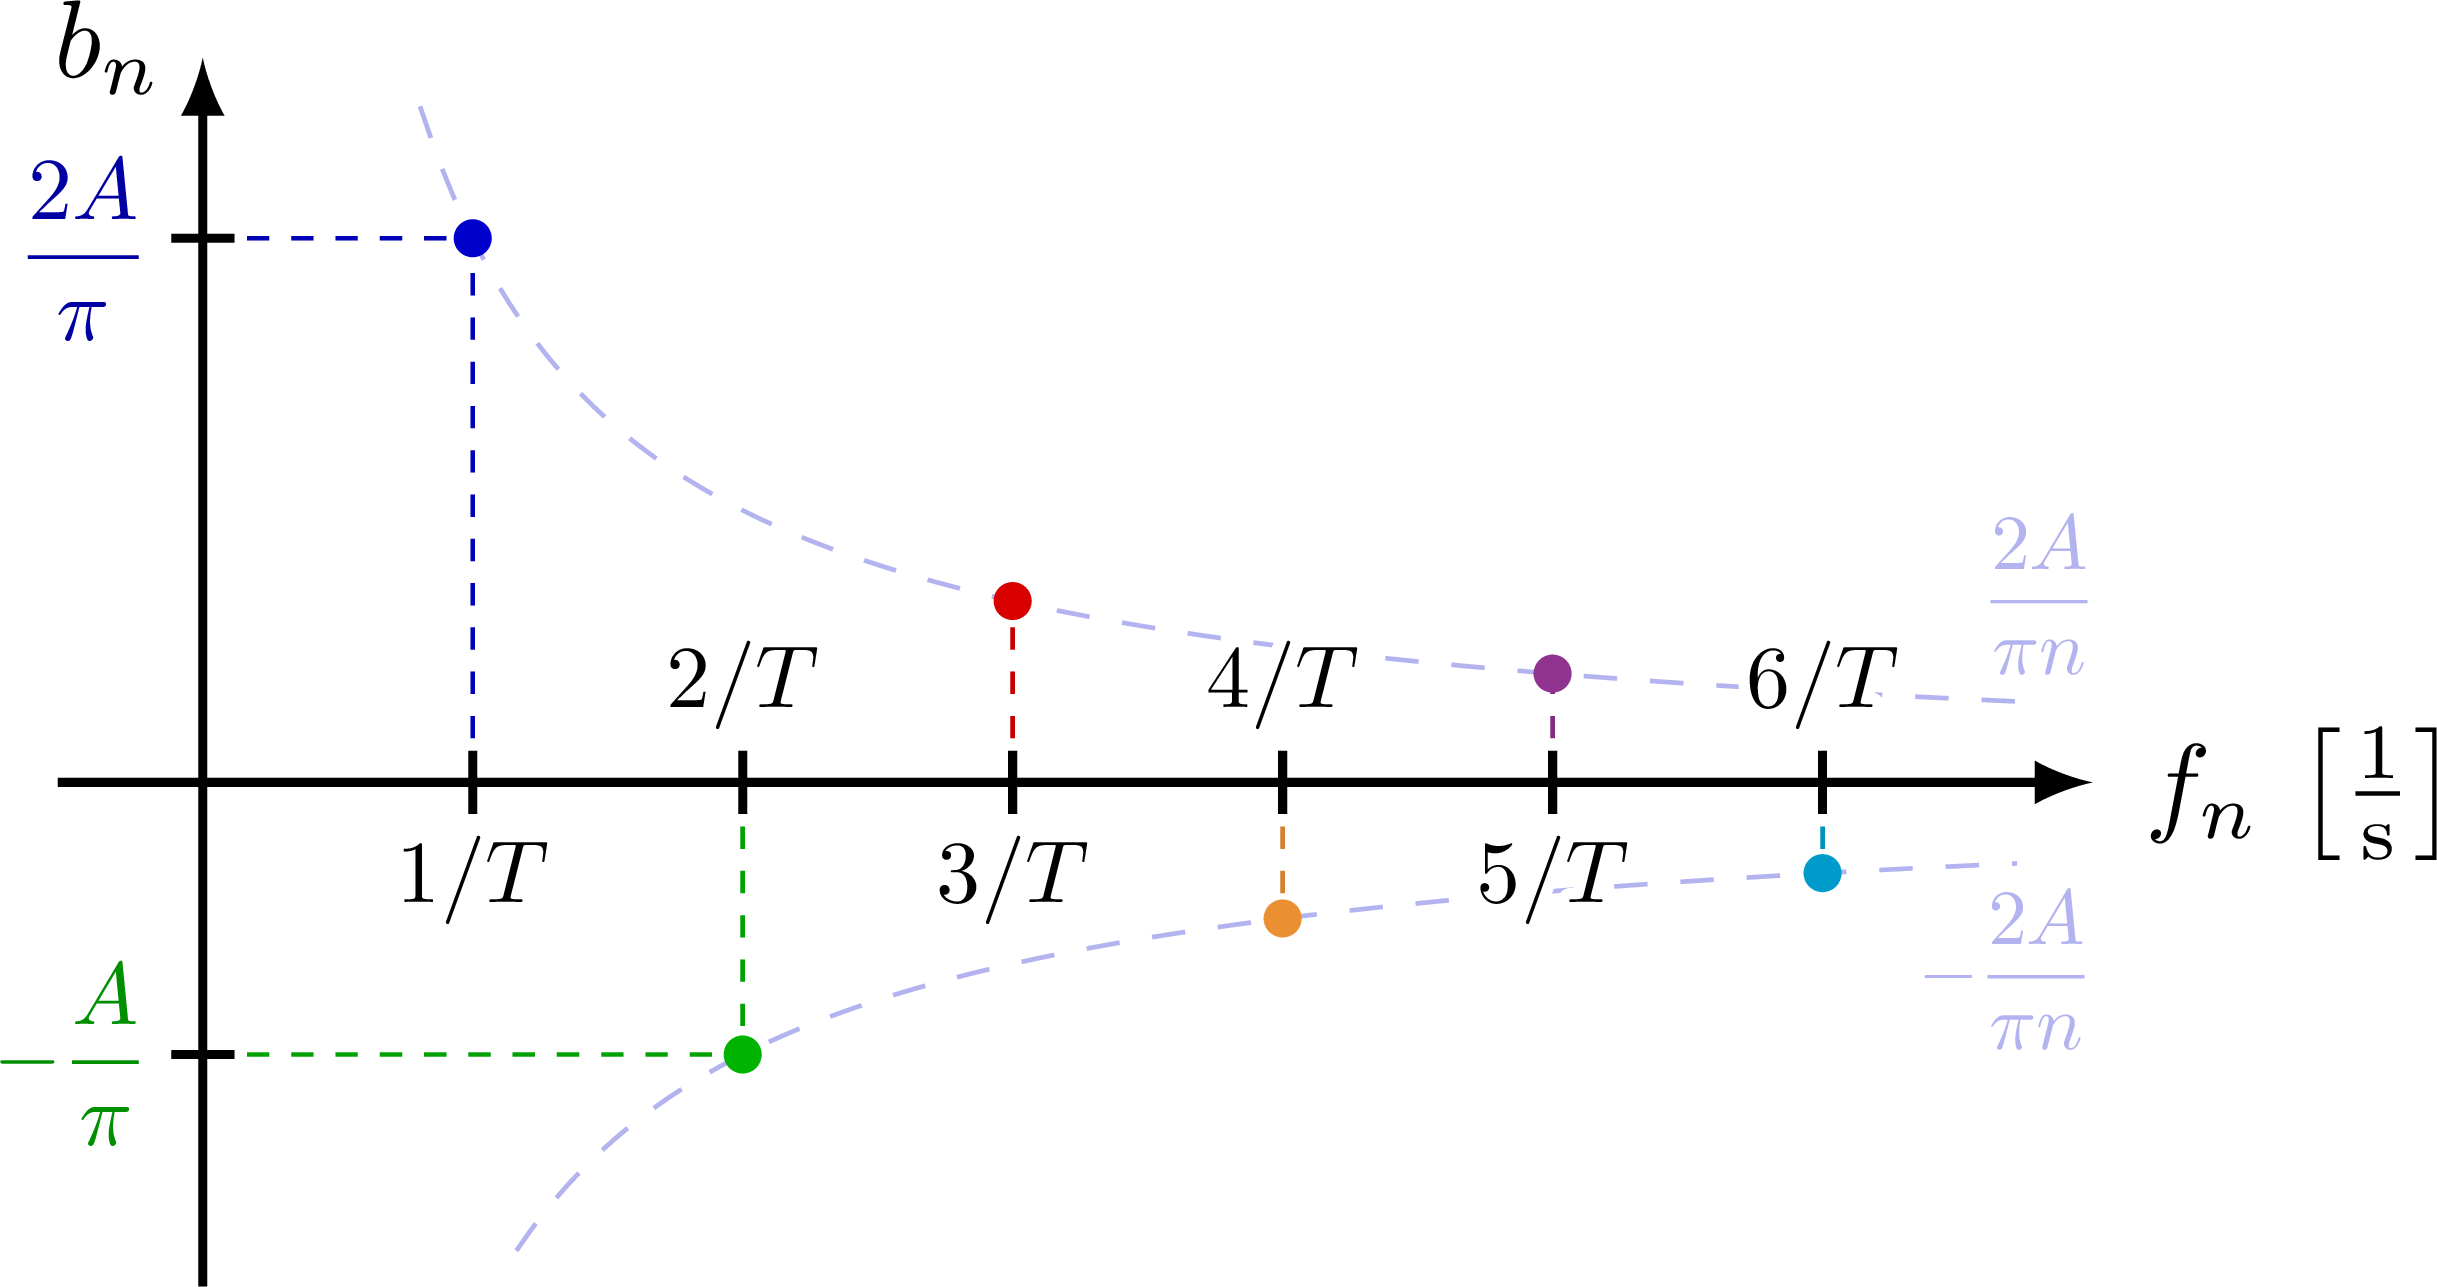 fourier_series-009.png